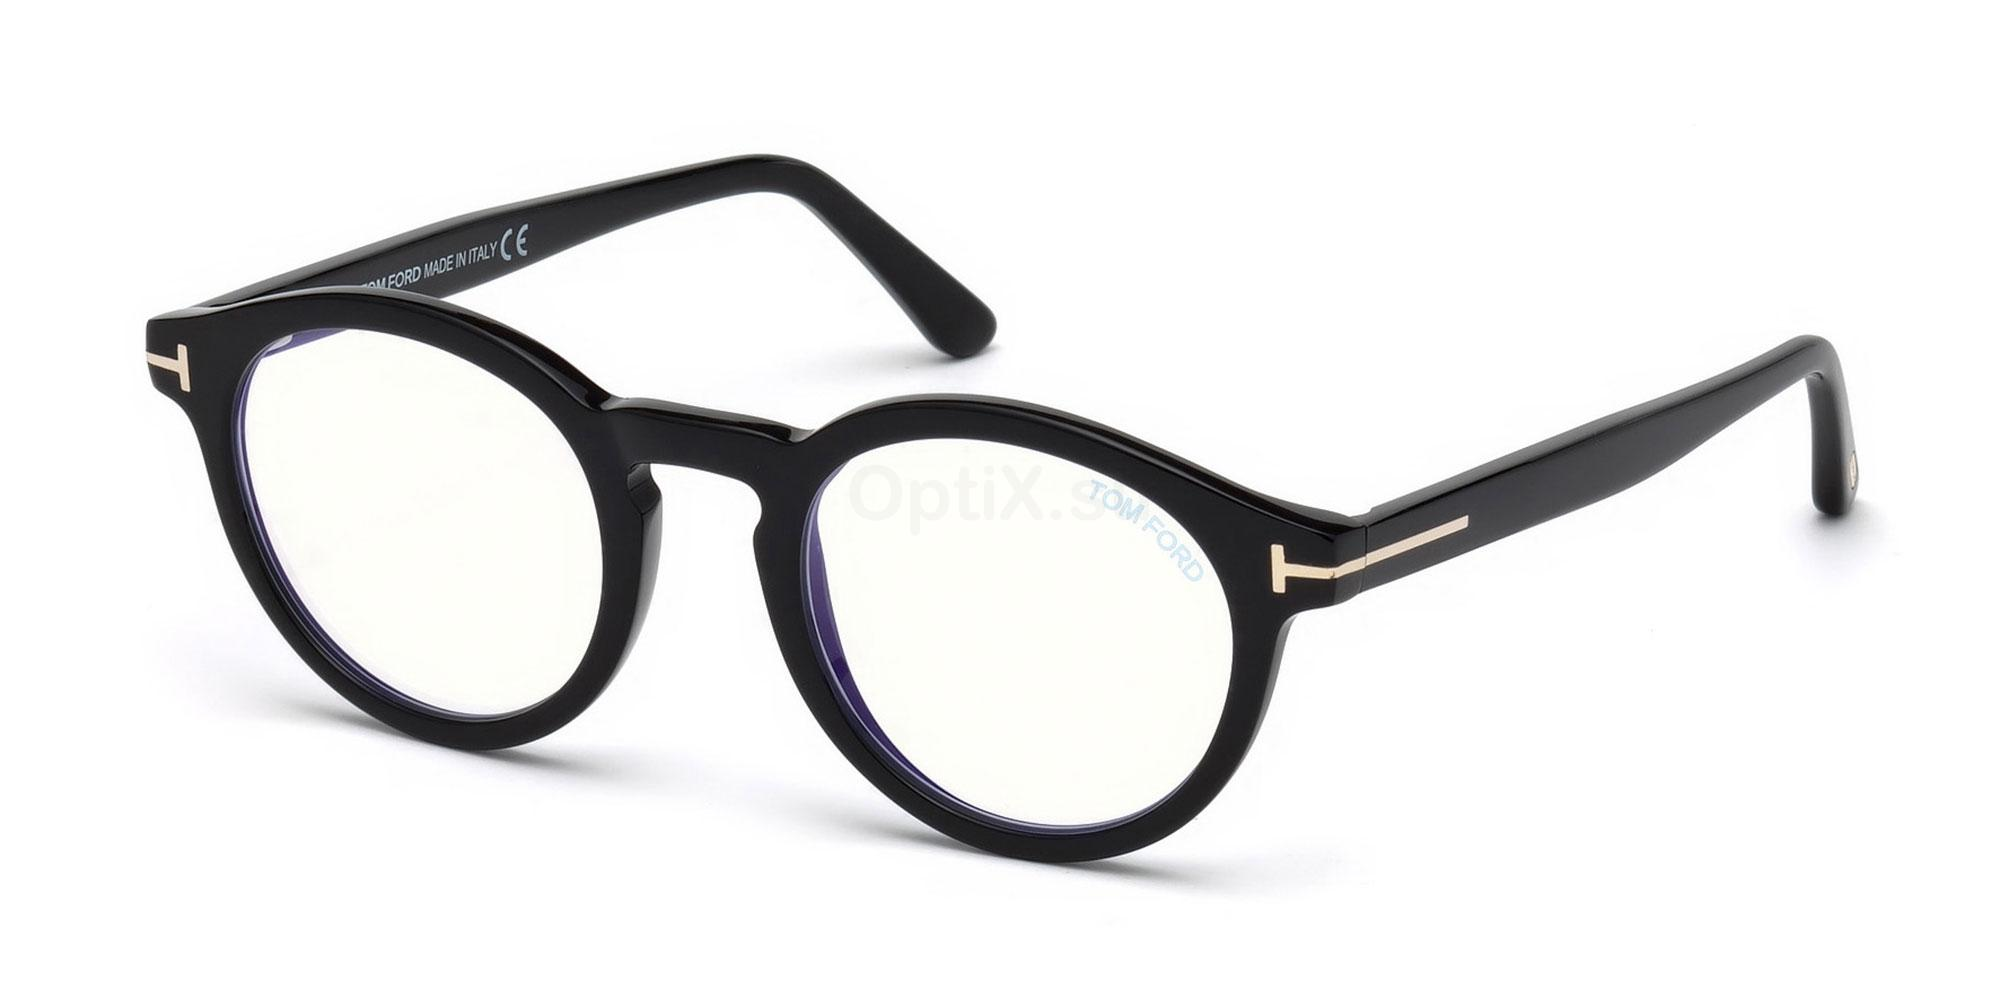 001 FT5529-B Glasses, Tom Ford